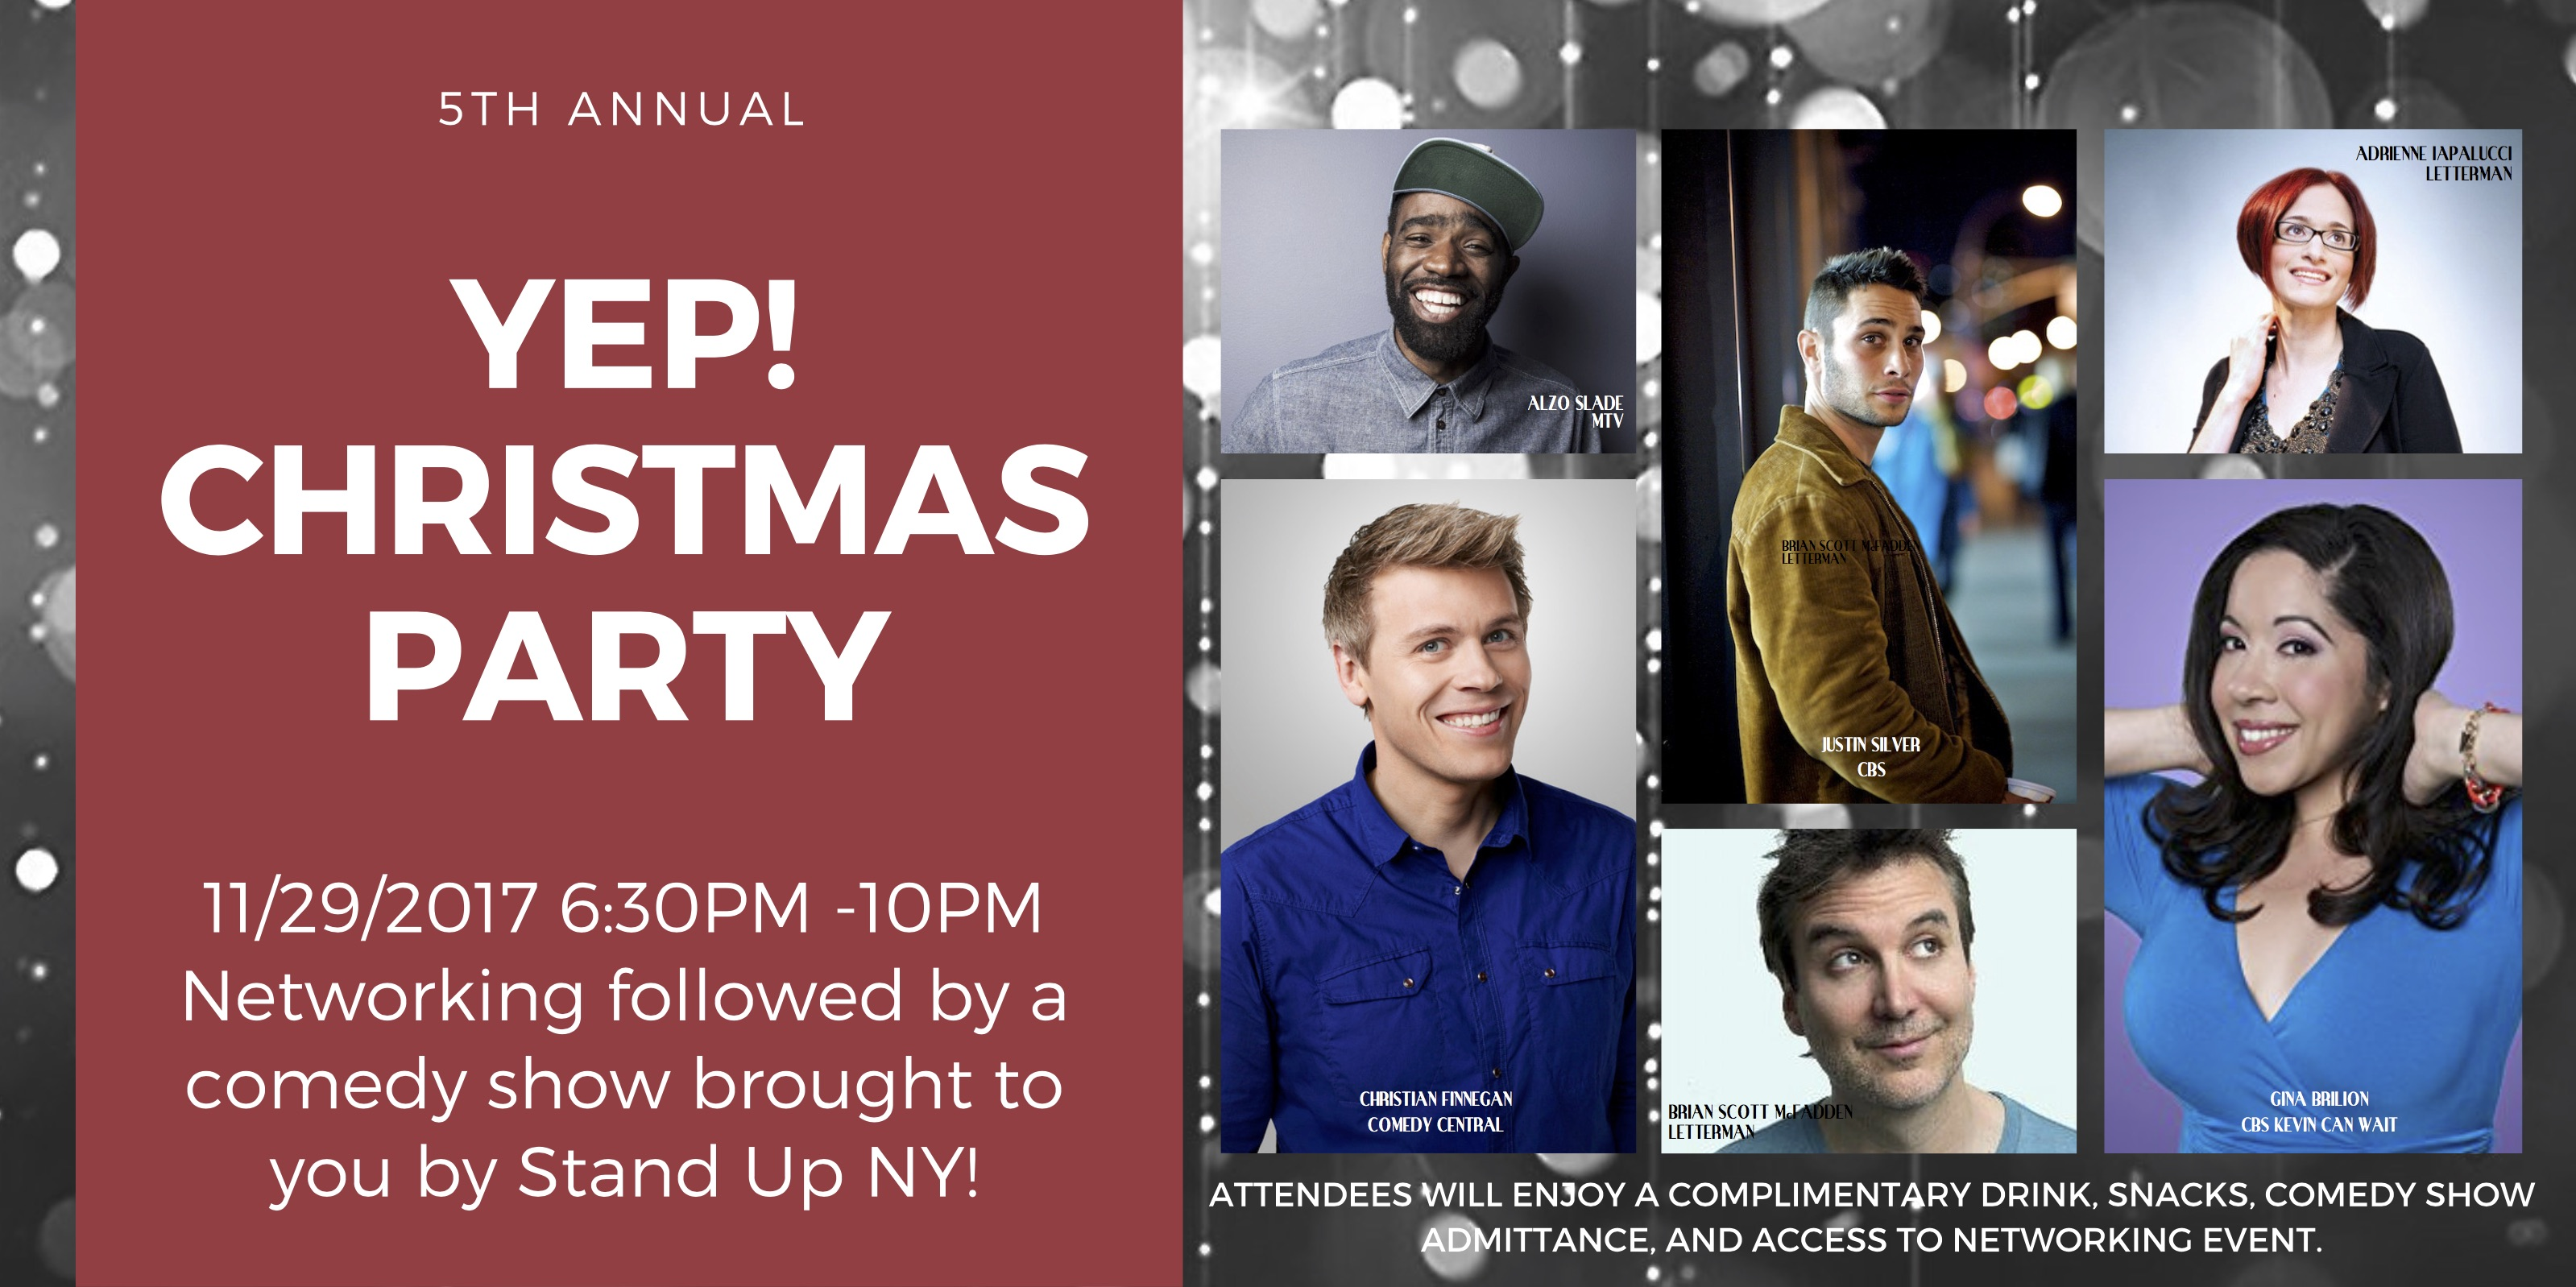 5th Annual YEP! All Industry Christmas Party